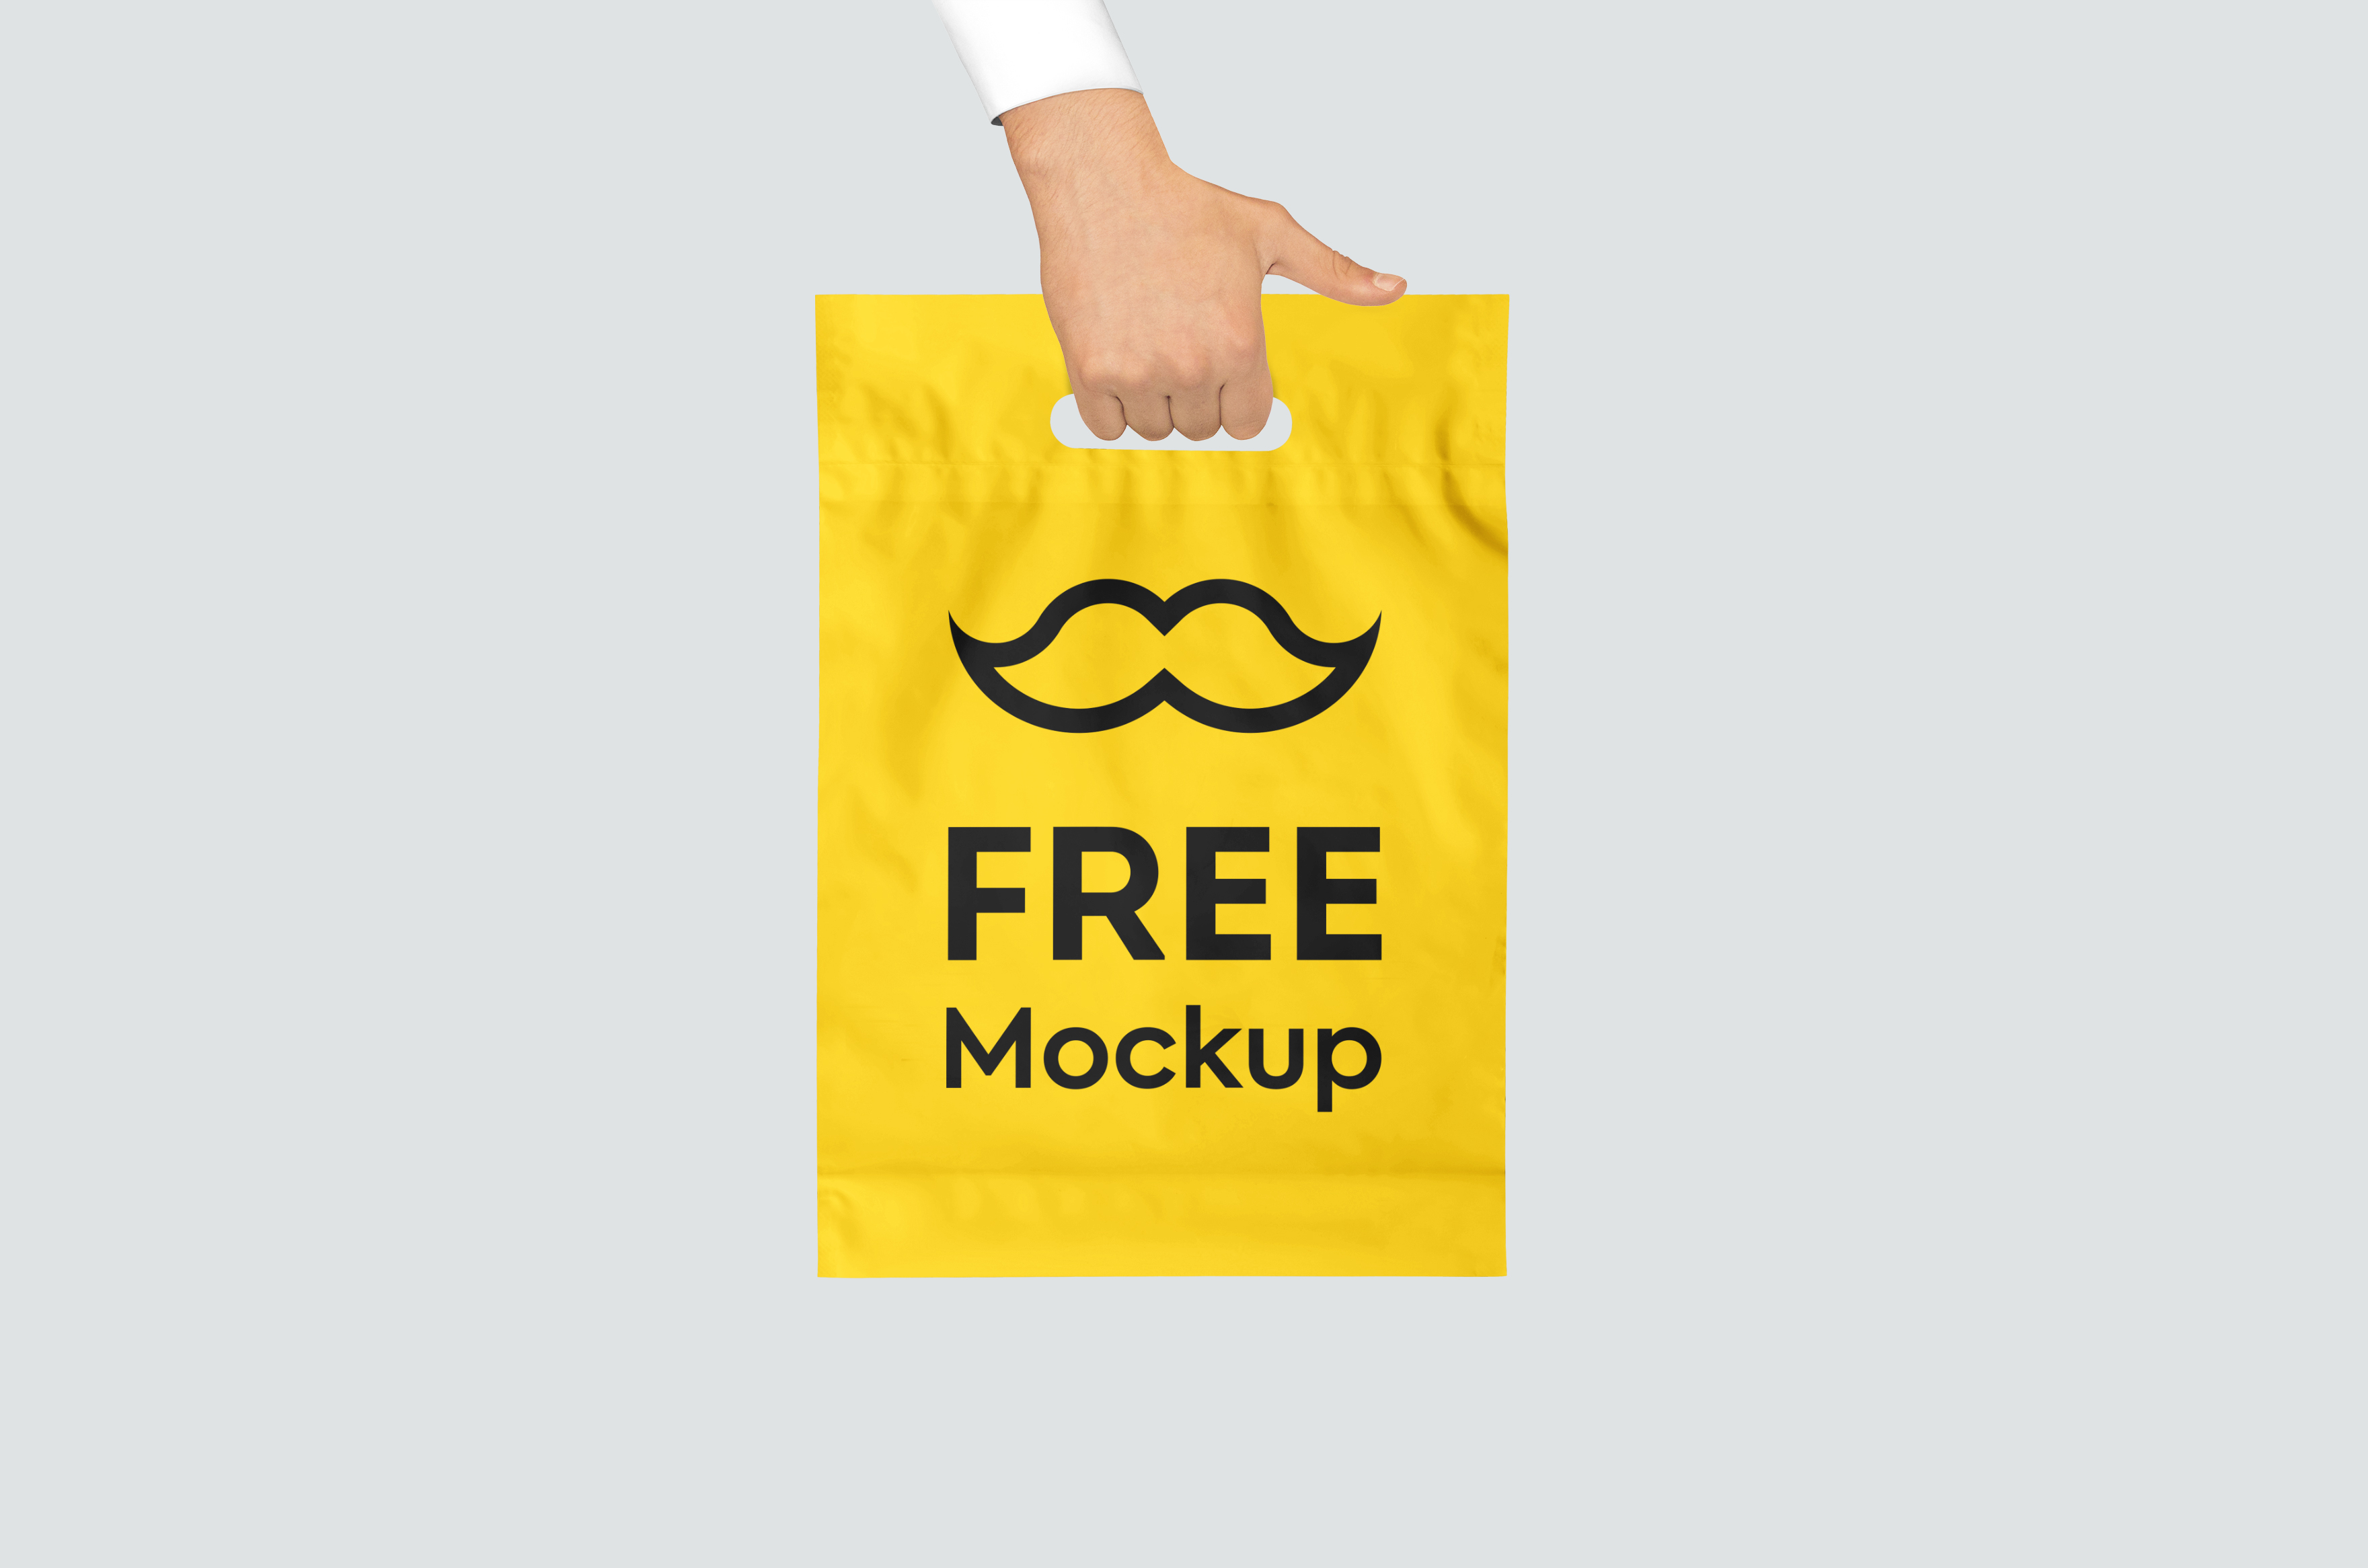 Bag Mockup By Amr Bo Shanab 1 - Free Bag Mockup PSD